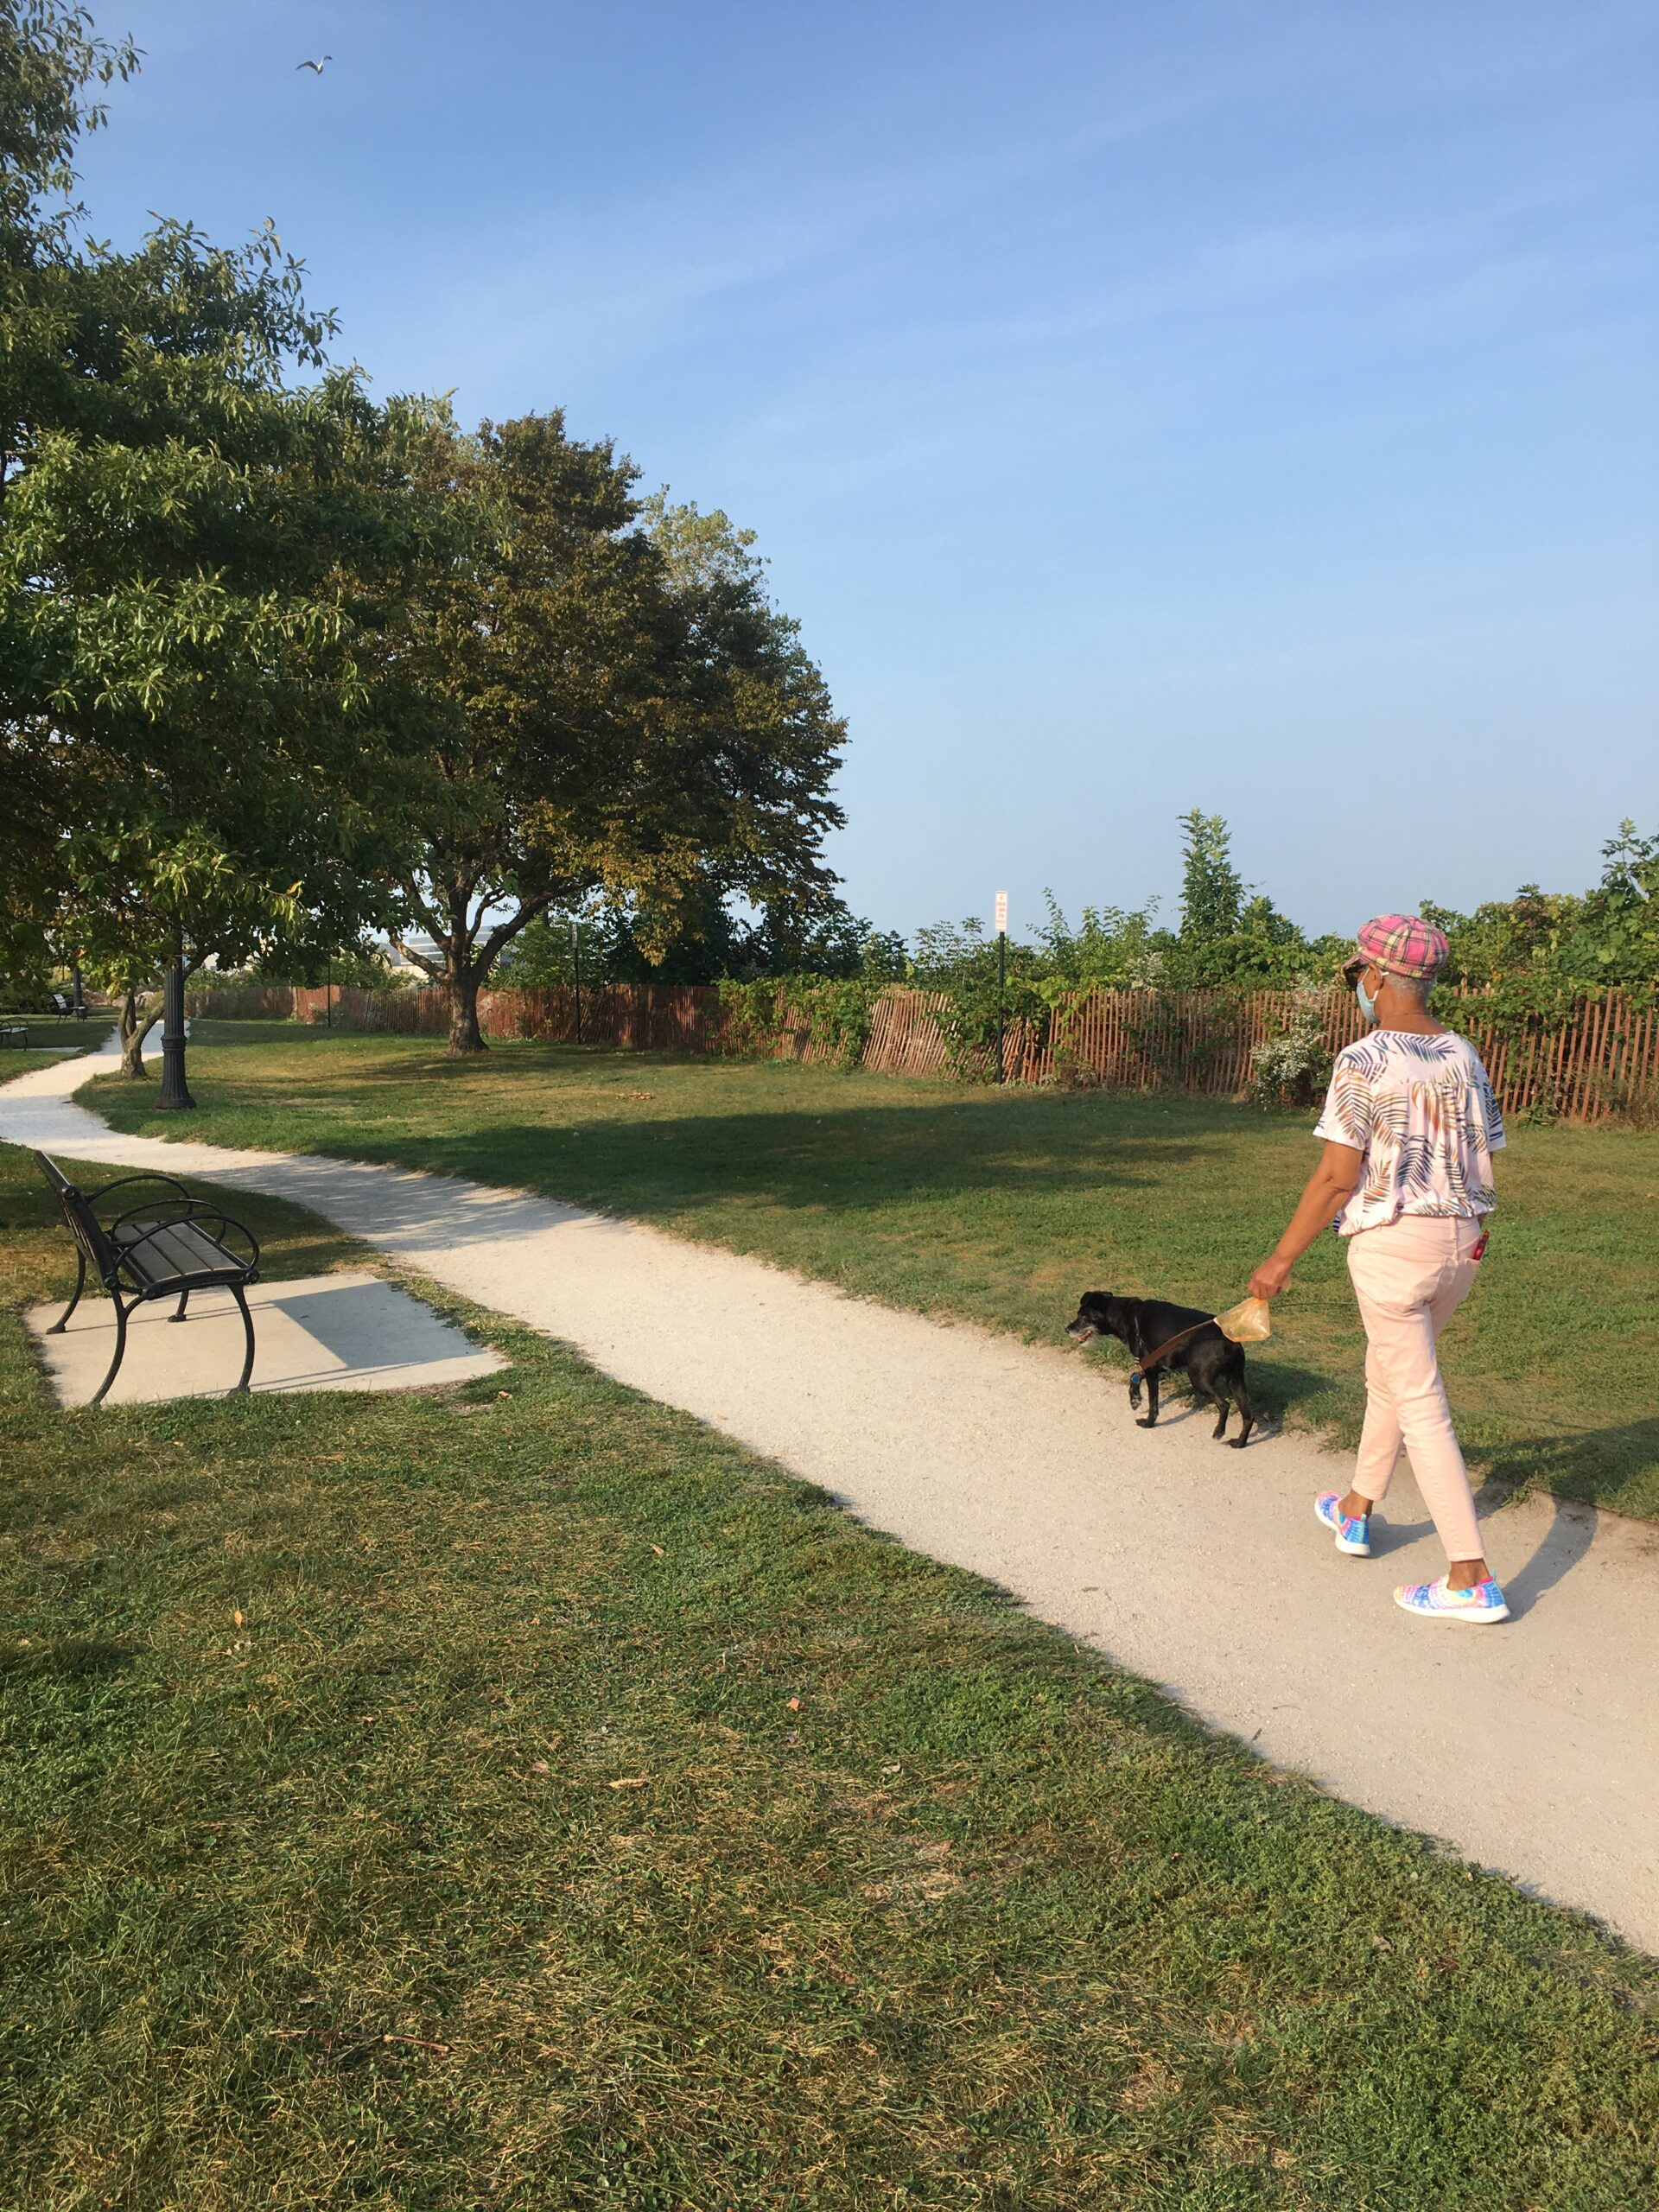 Lincoln Street Beach surfaces as possible dog park candidate